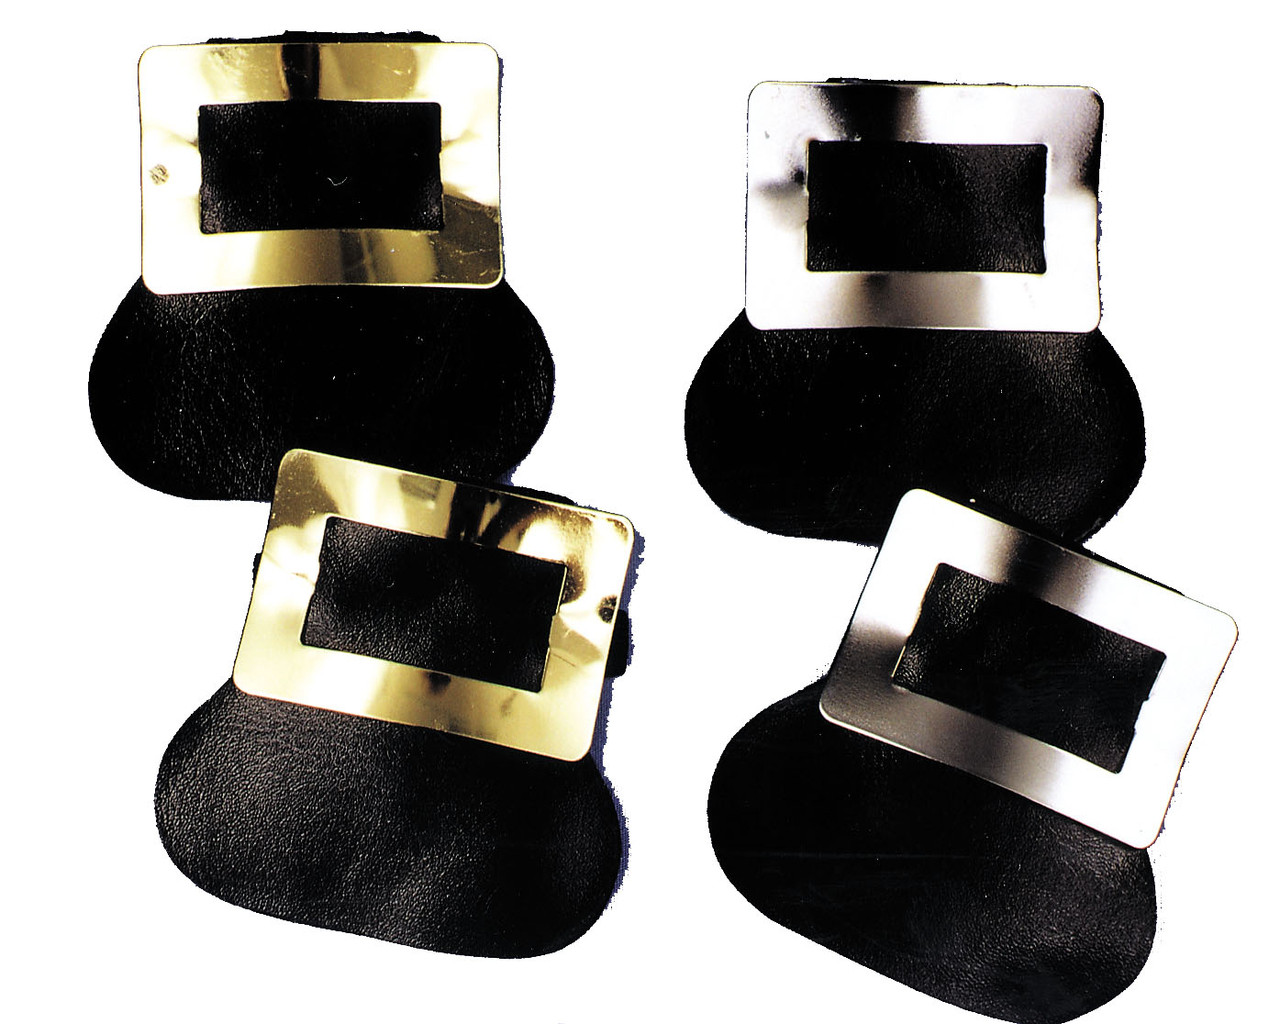 Buckle Tip Sets Tom Taylor Belts Buckles Bags Colonial Shoe Buckles